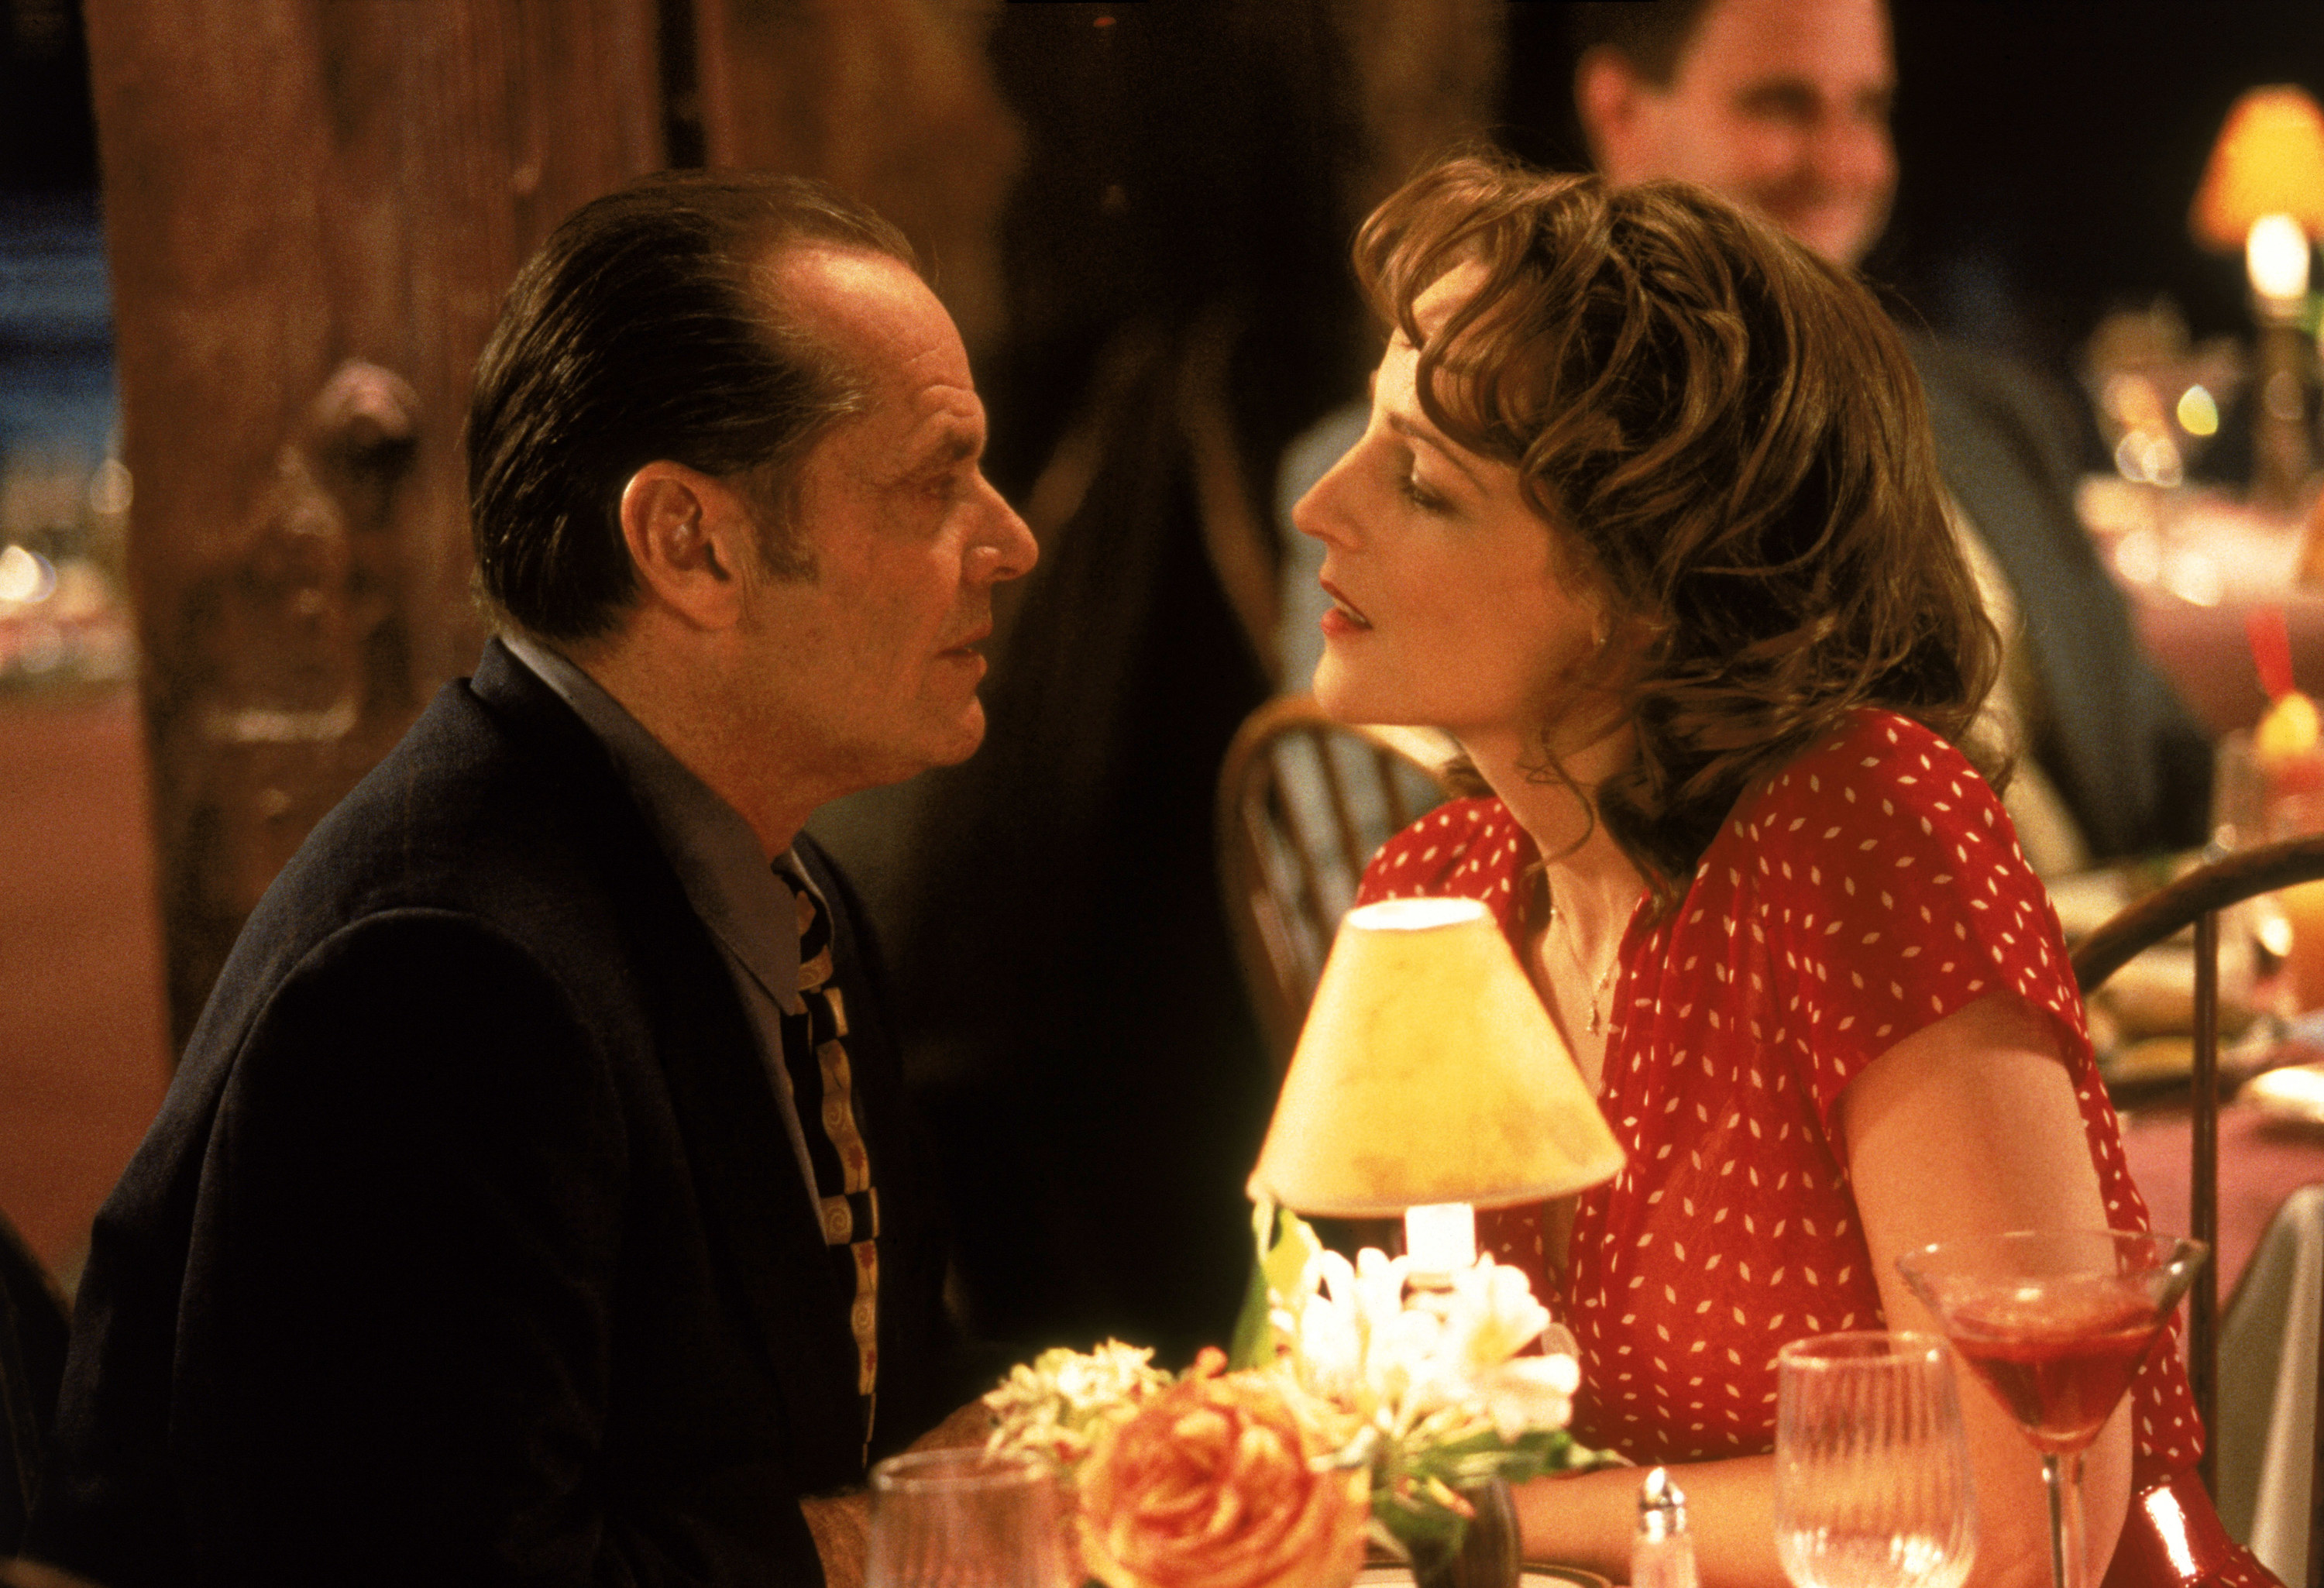 Jack Nicholson and Helen Hunt at a dinner table together